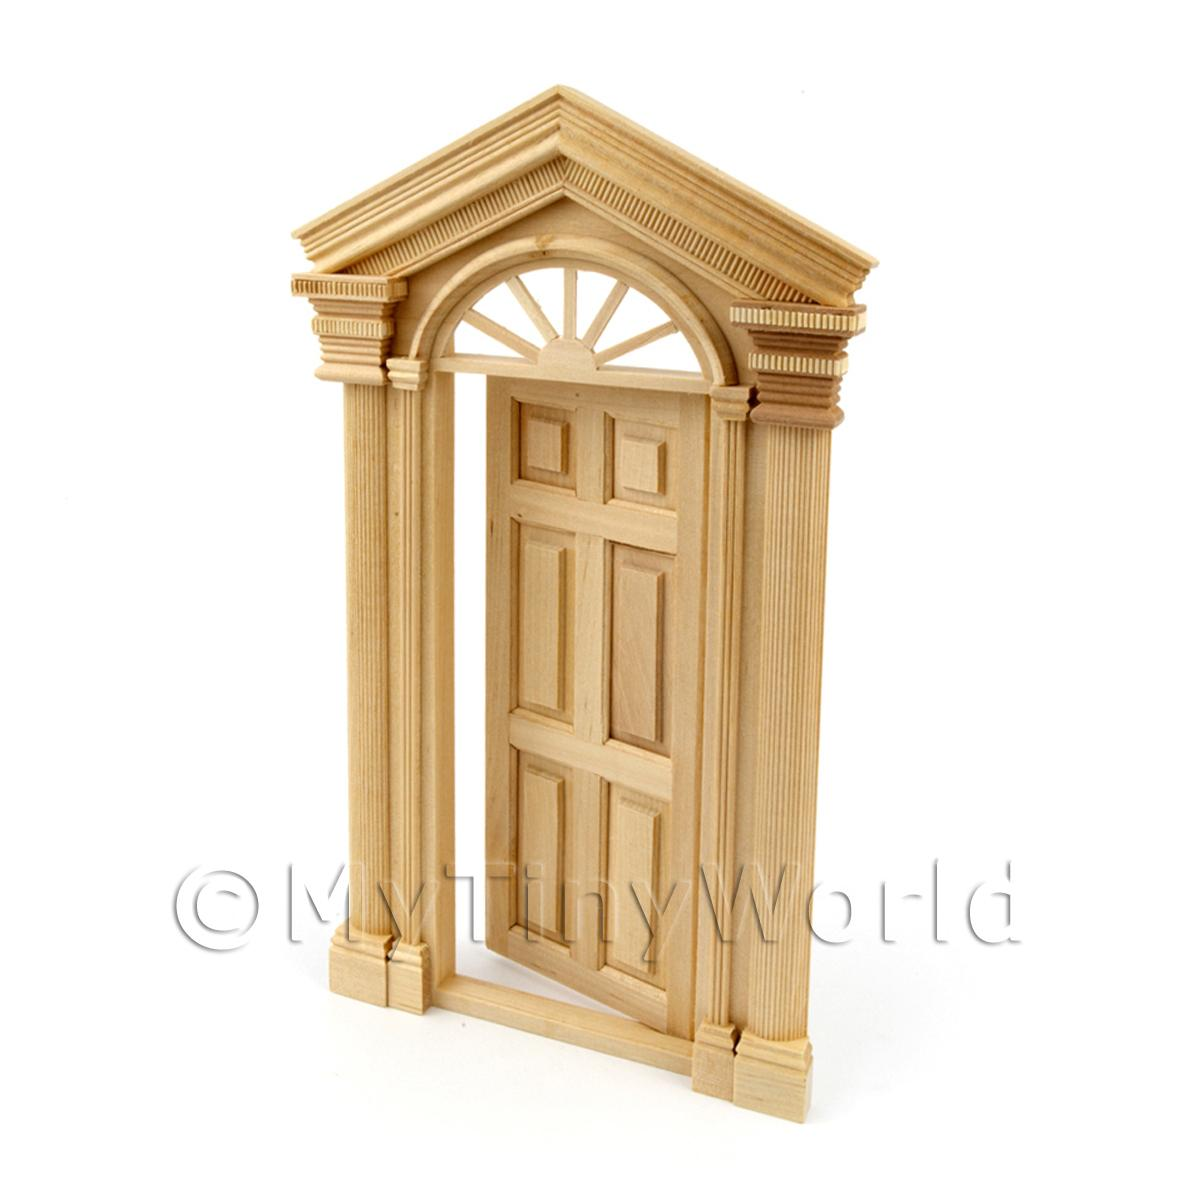 Dolls House Miniature External Door With Portico